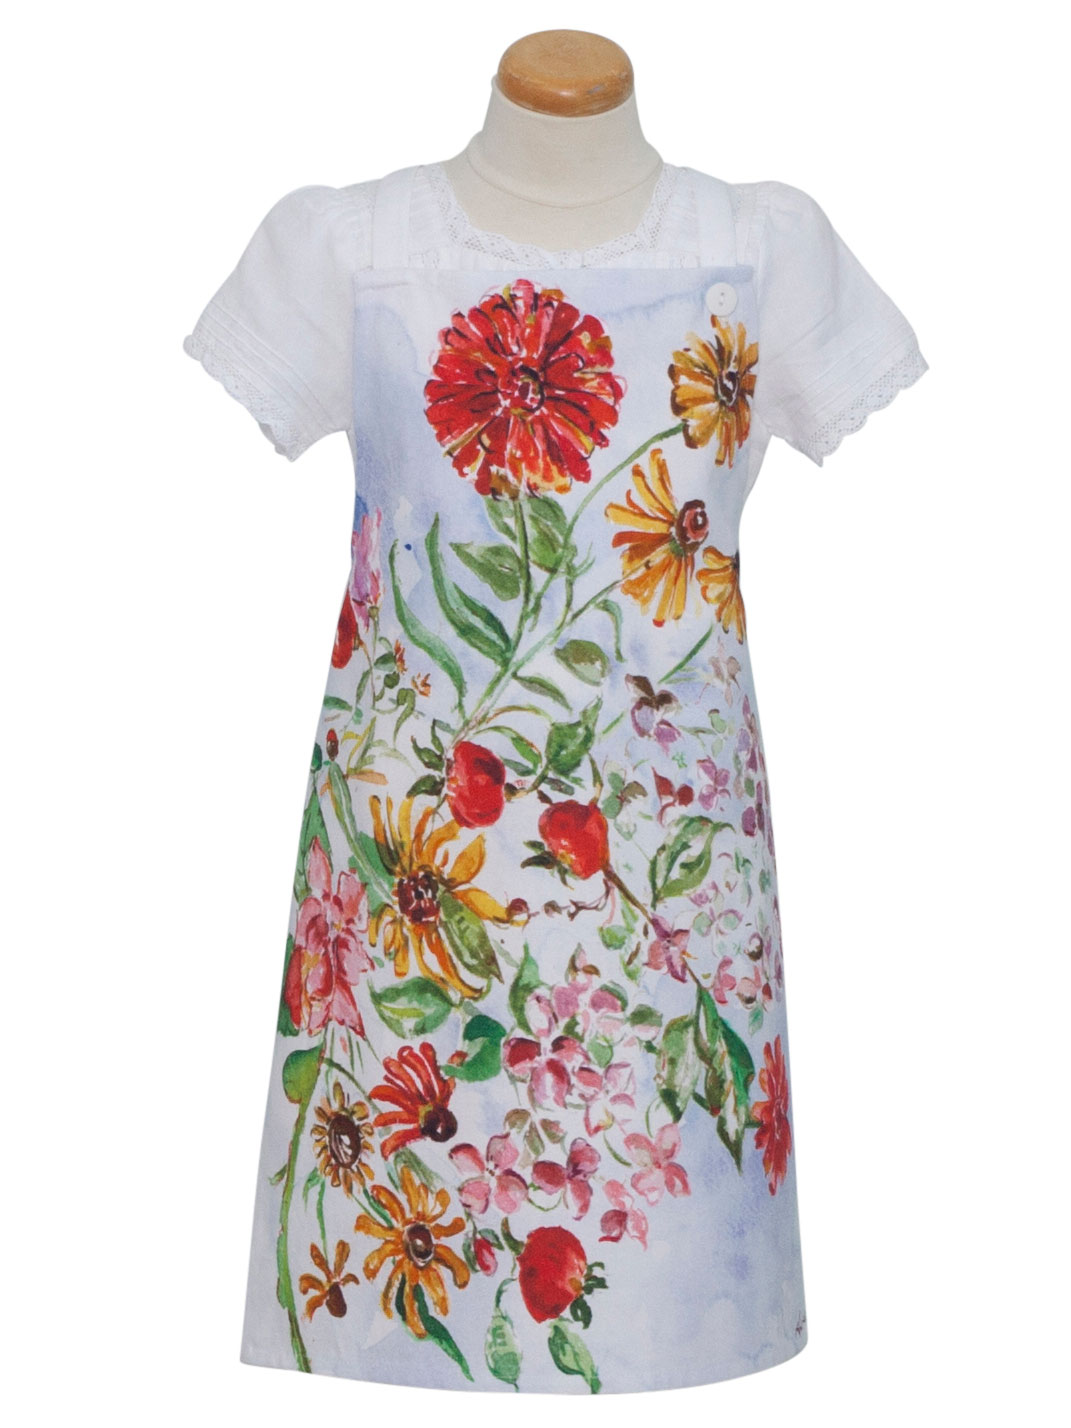 Zinnia Bouquet Kids Apron | Linens & Kitchen, Aprons, Ovenmitts ...